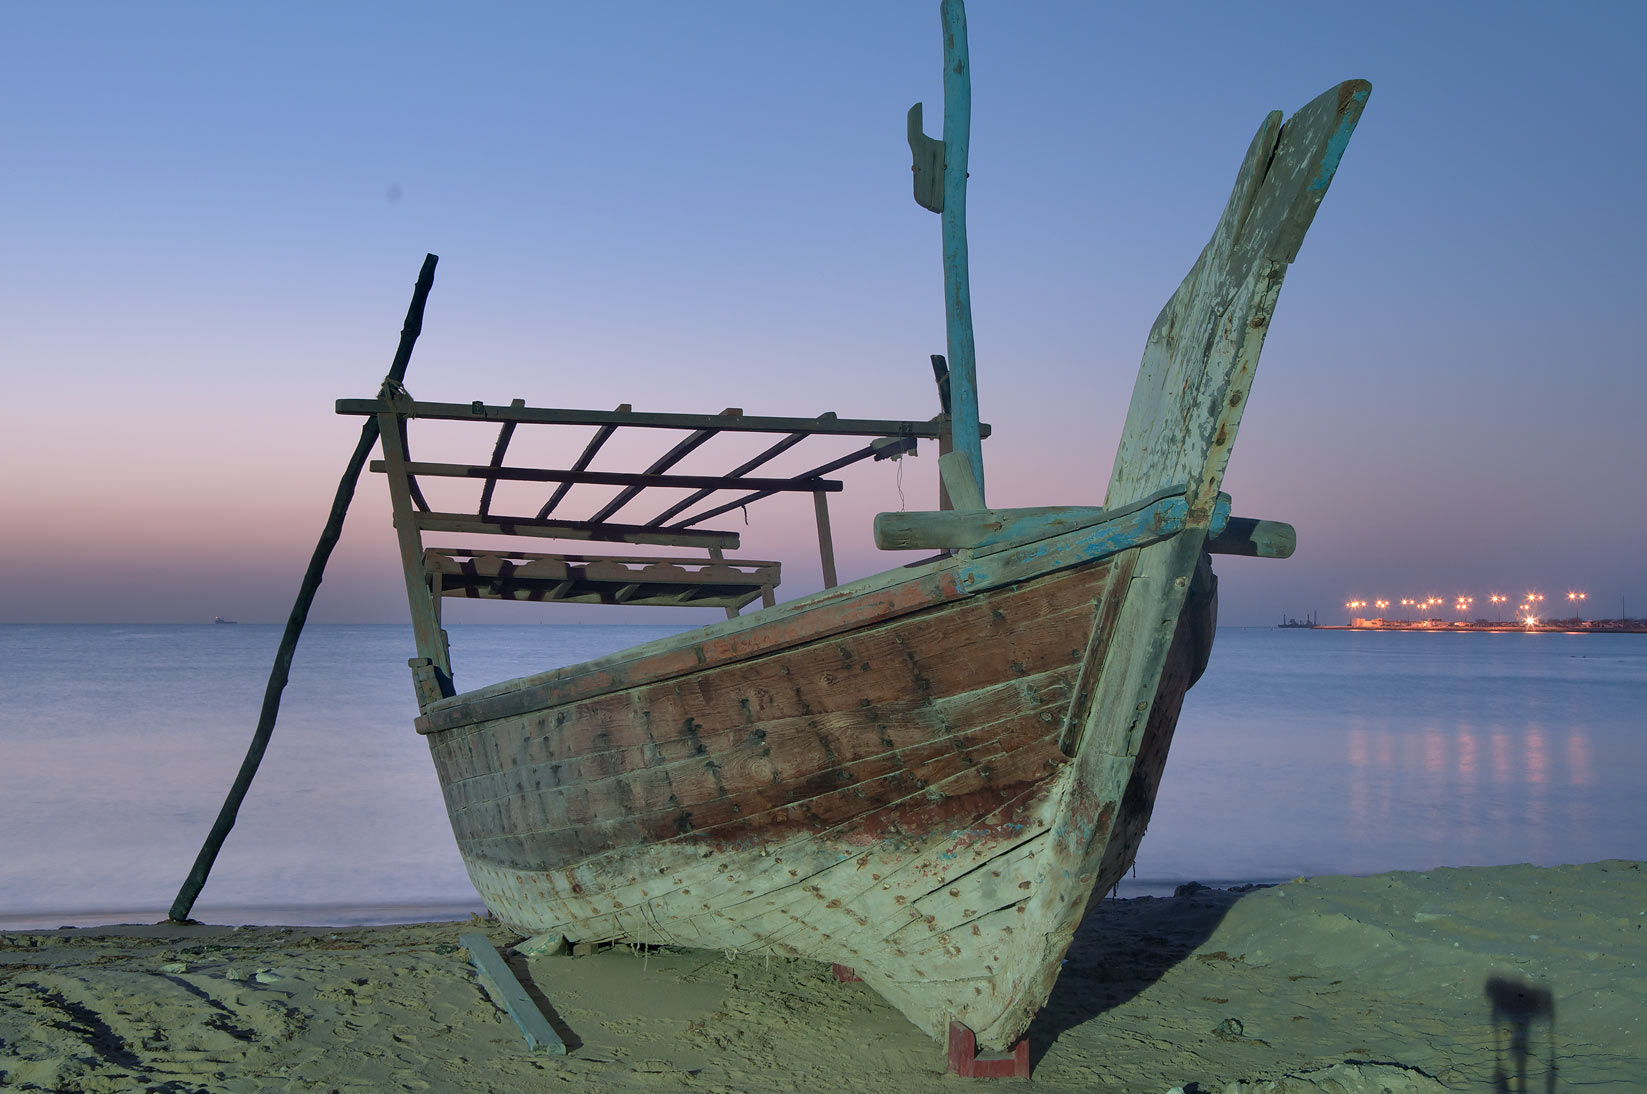 Beached dhow boat near heritage village at morning dusk. Al Wakrah, Qatar